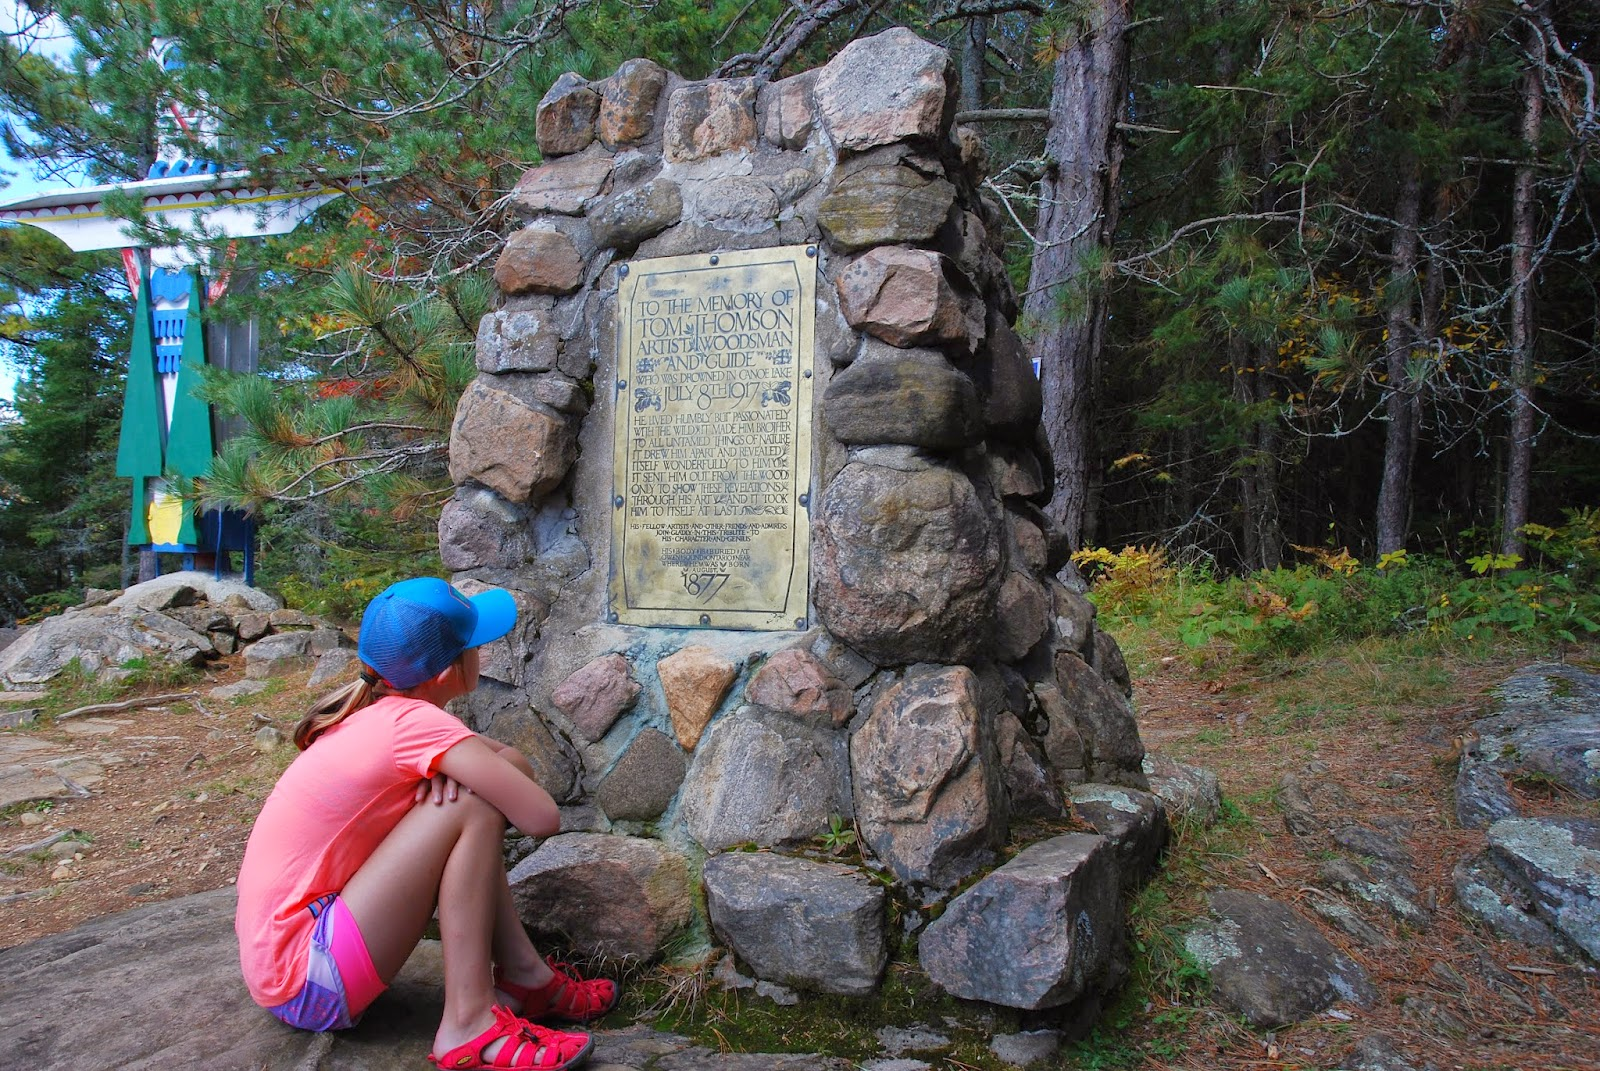 Visiting Tom Thomson memorial cairn and totem pole, Canoe Lake, Algonquin Park